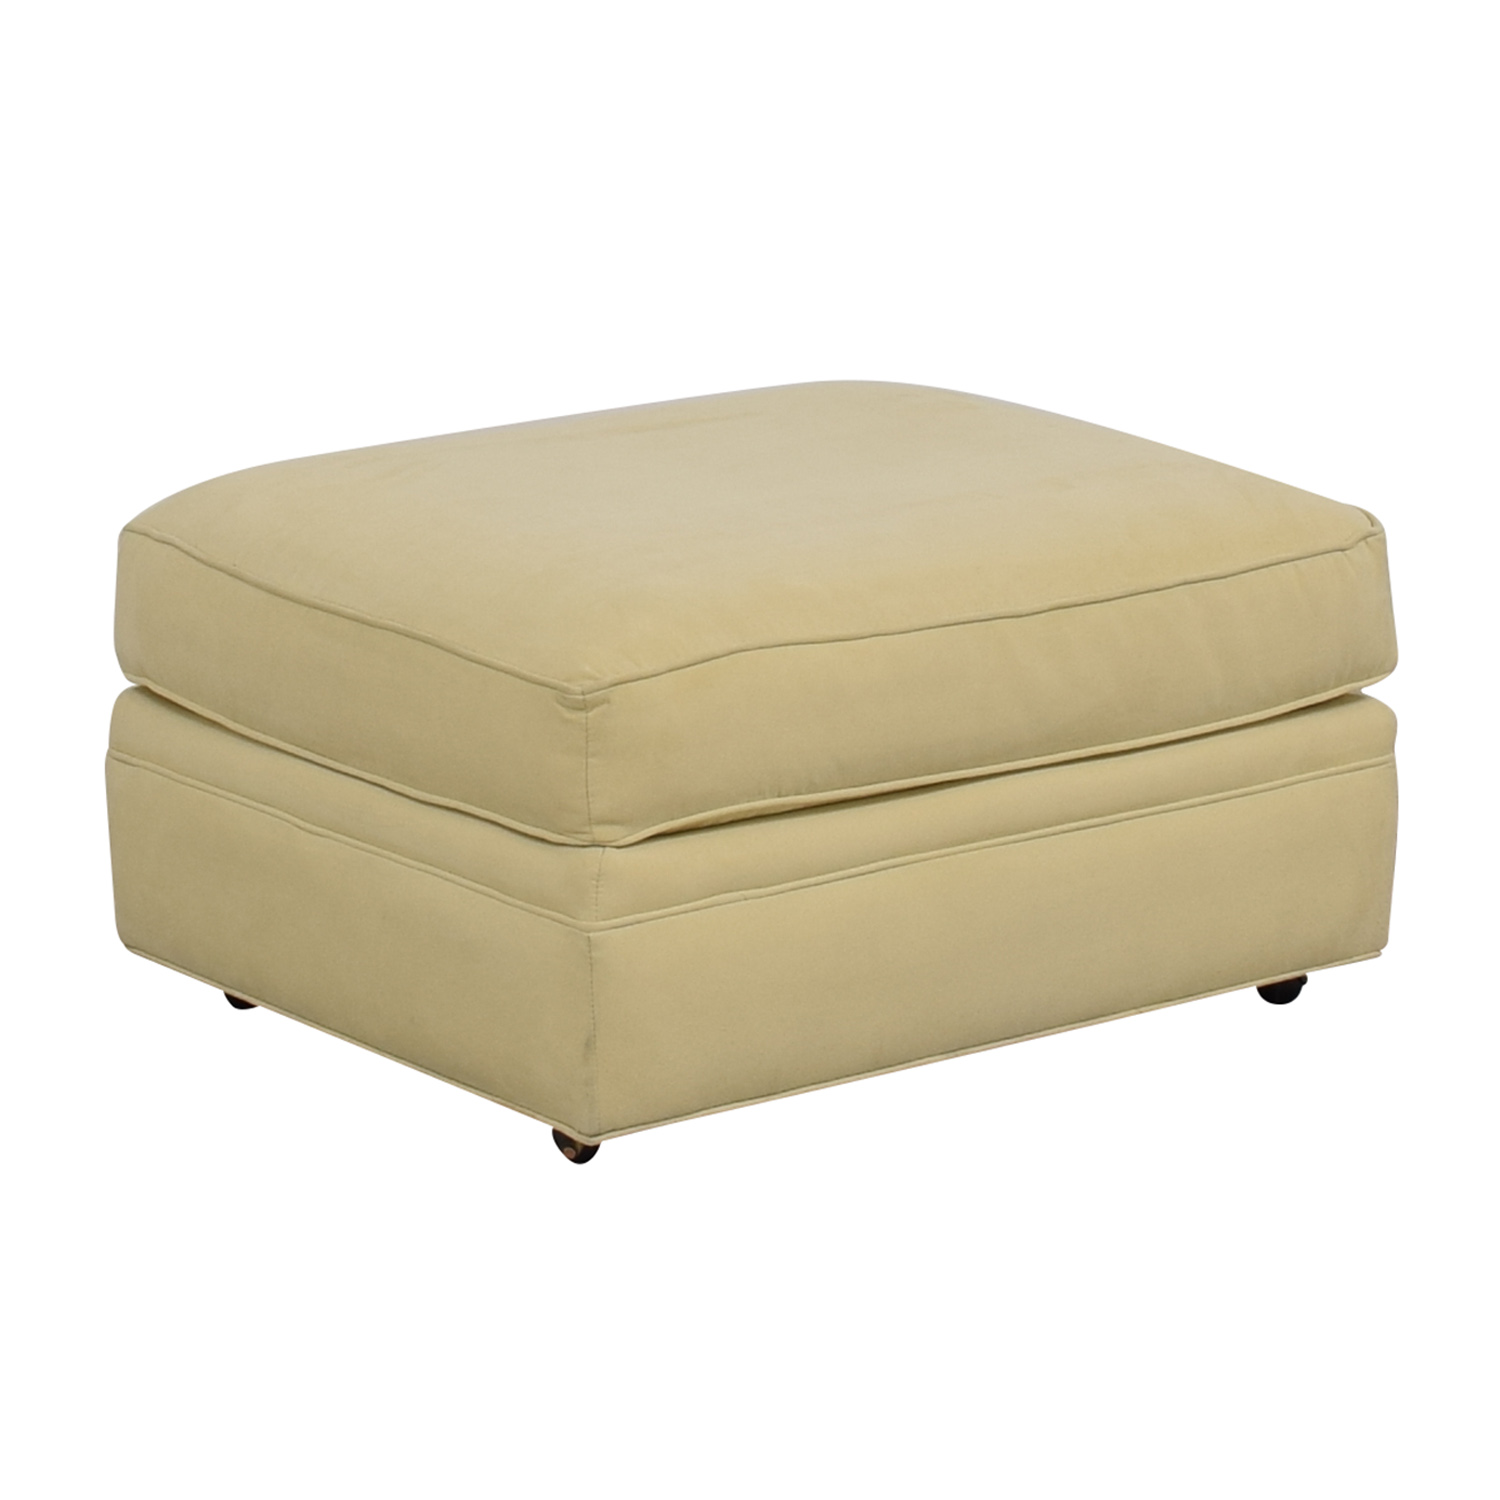 Crate & Barrel Crate & Barrel Beige Ottoman Chairs